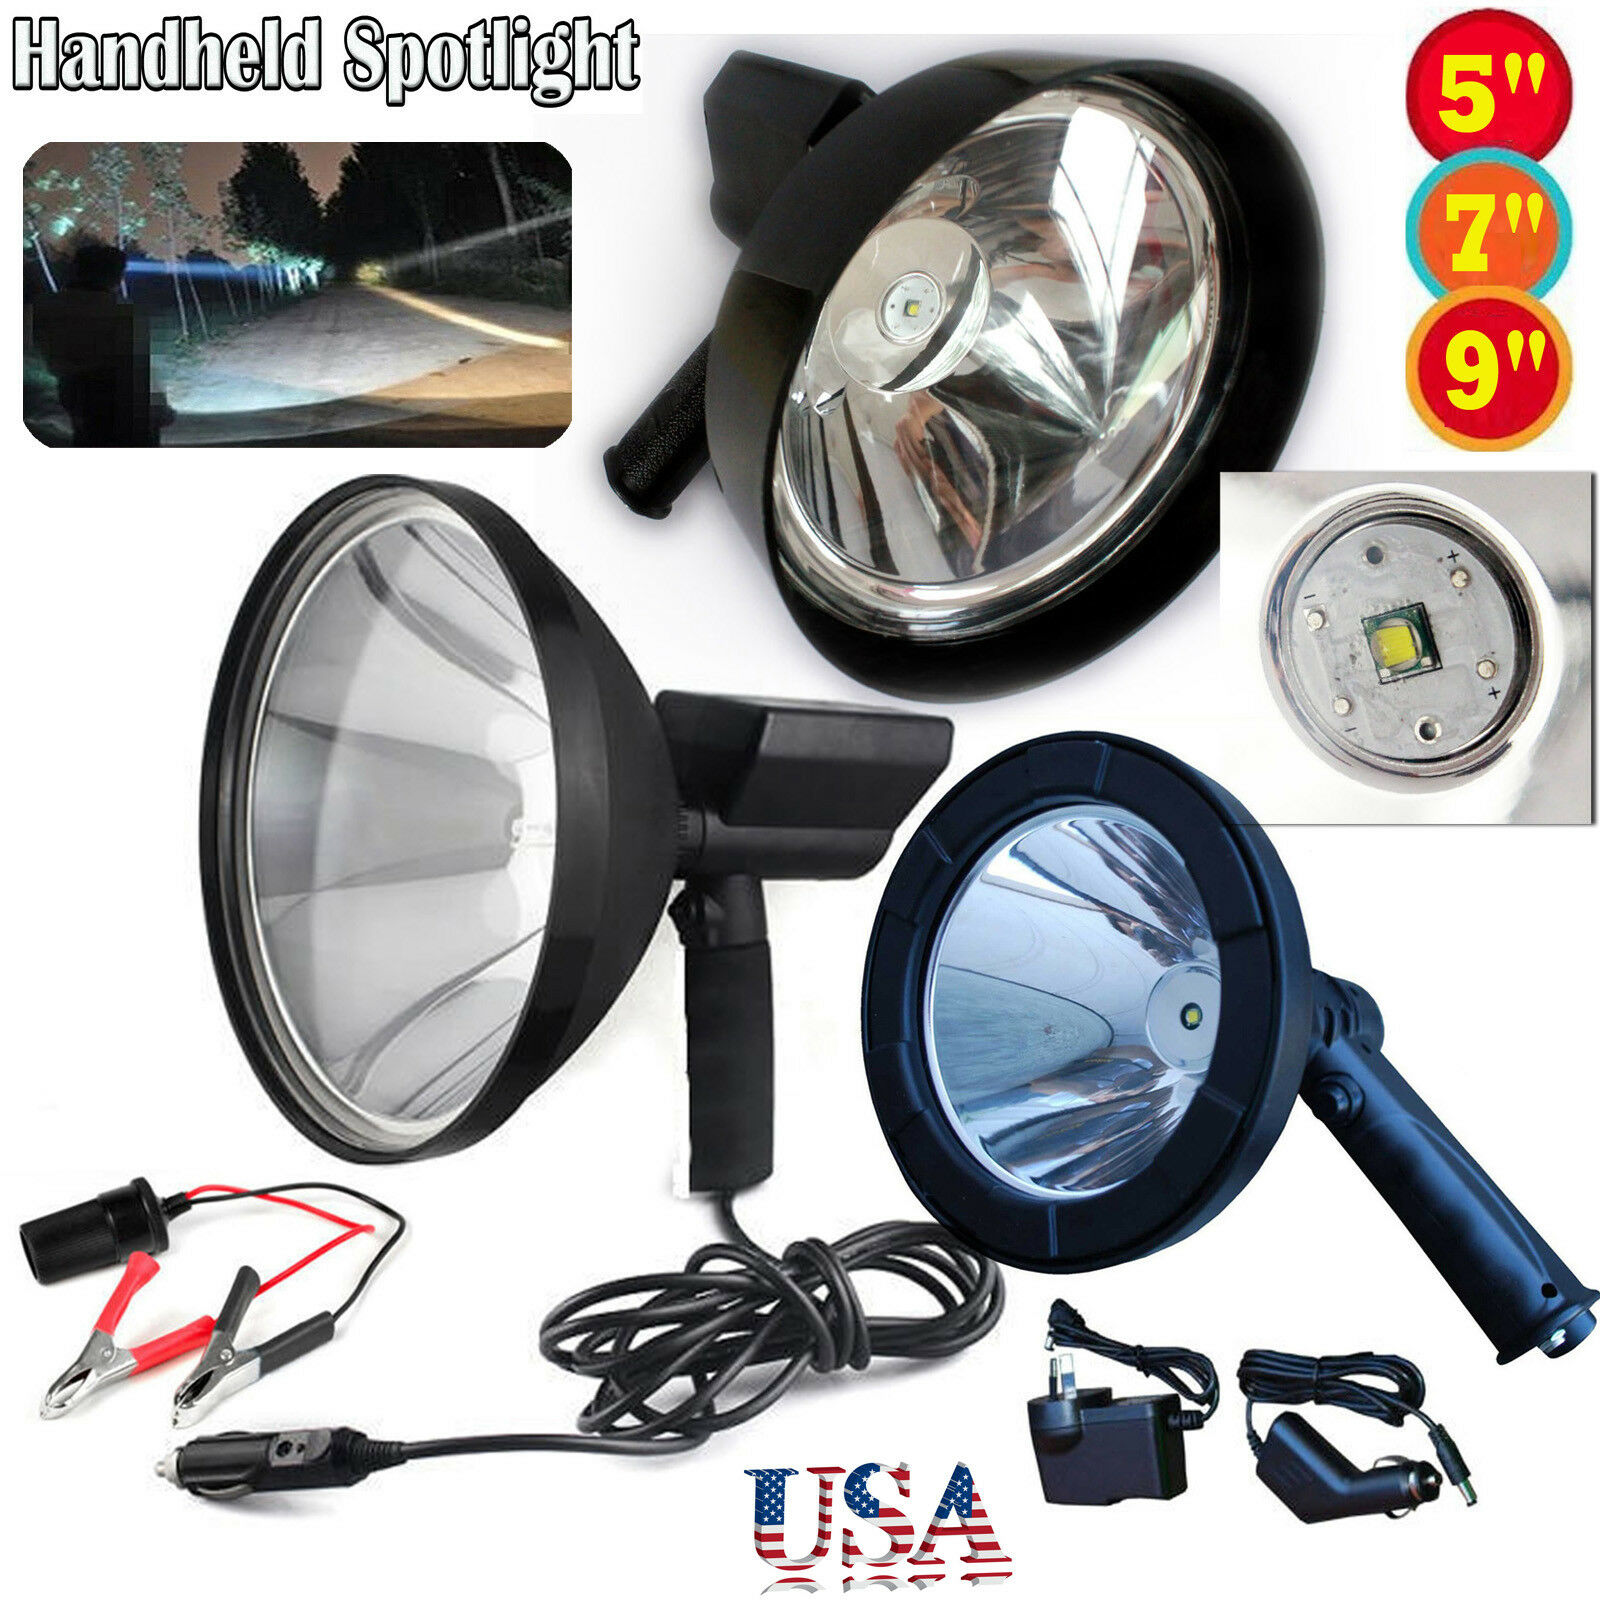 5 7 9 Inch Spotlight Handheld Rechargeable Light Flashlight 500W Camping Hunting